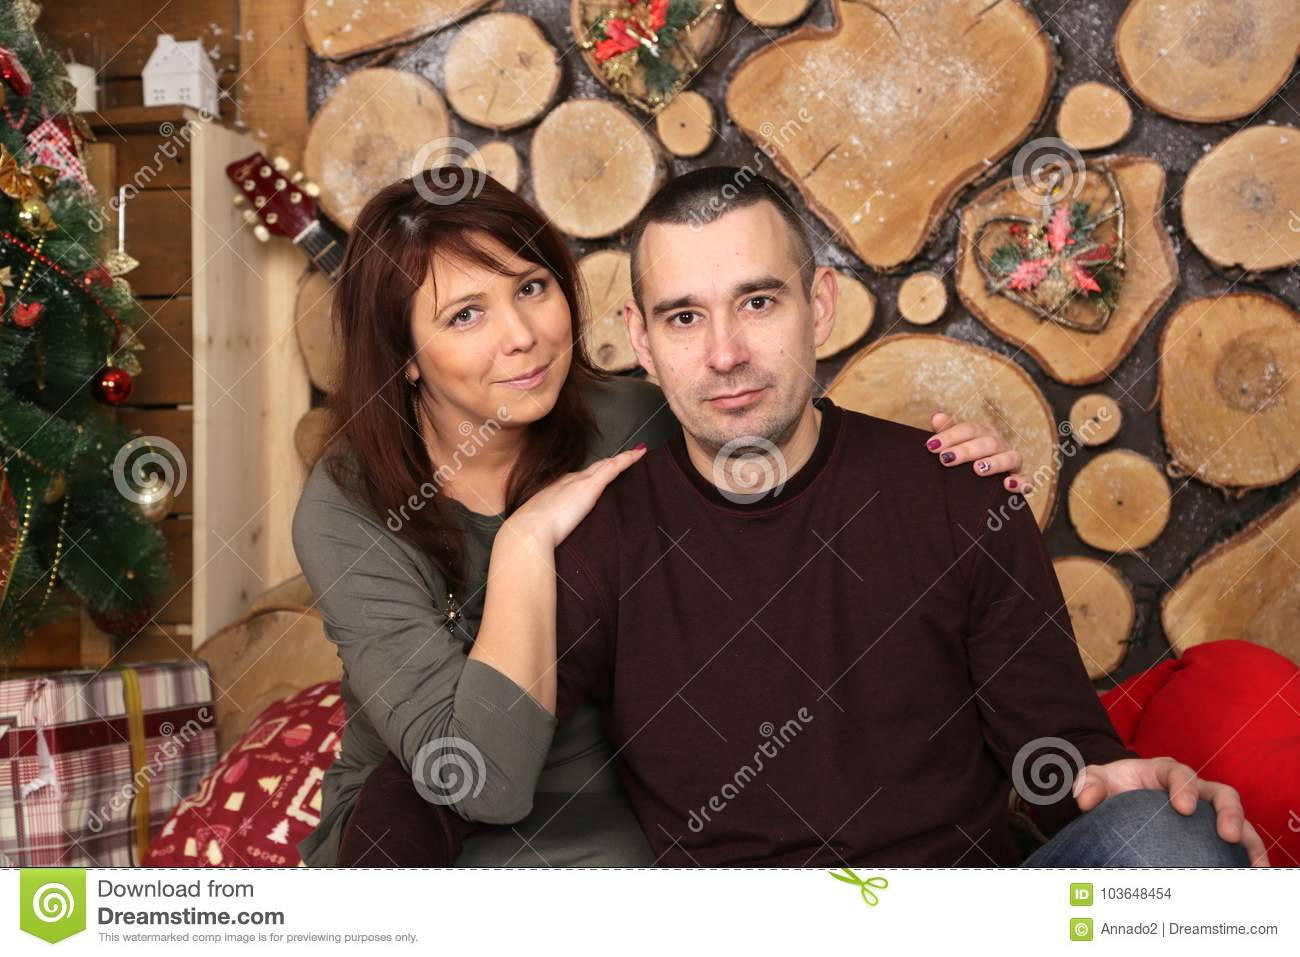 young married couple at christmas tree with gifts portrait in a beautiful festive interior